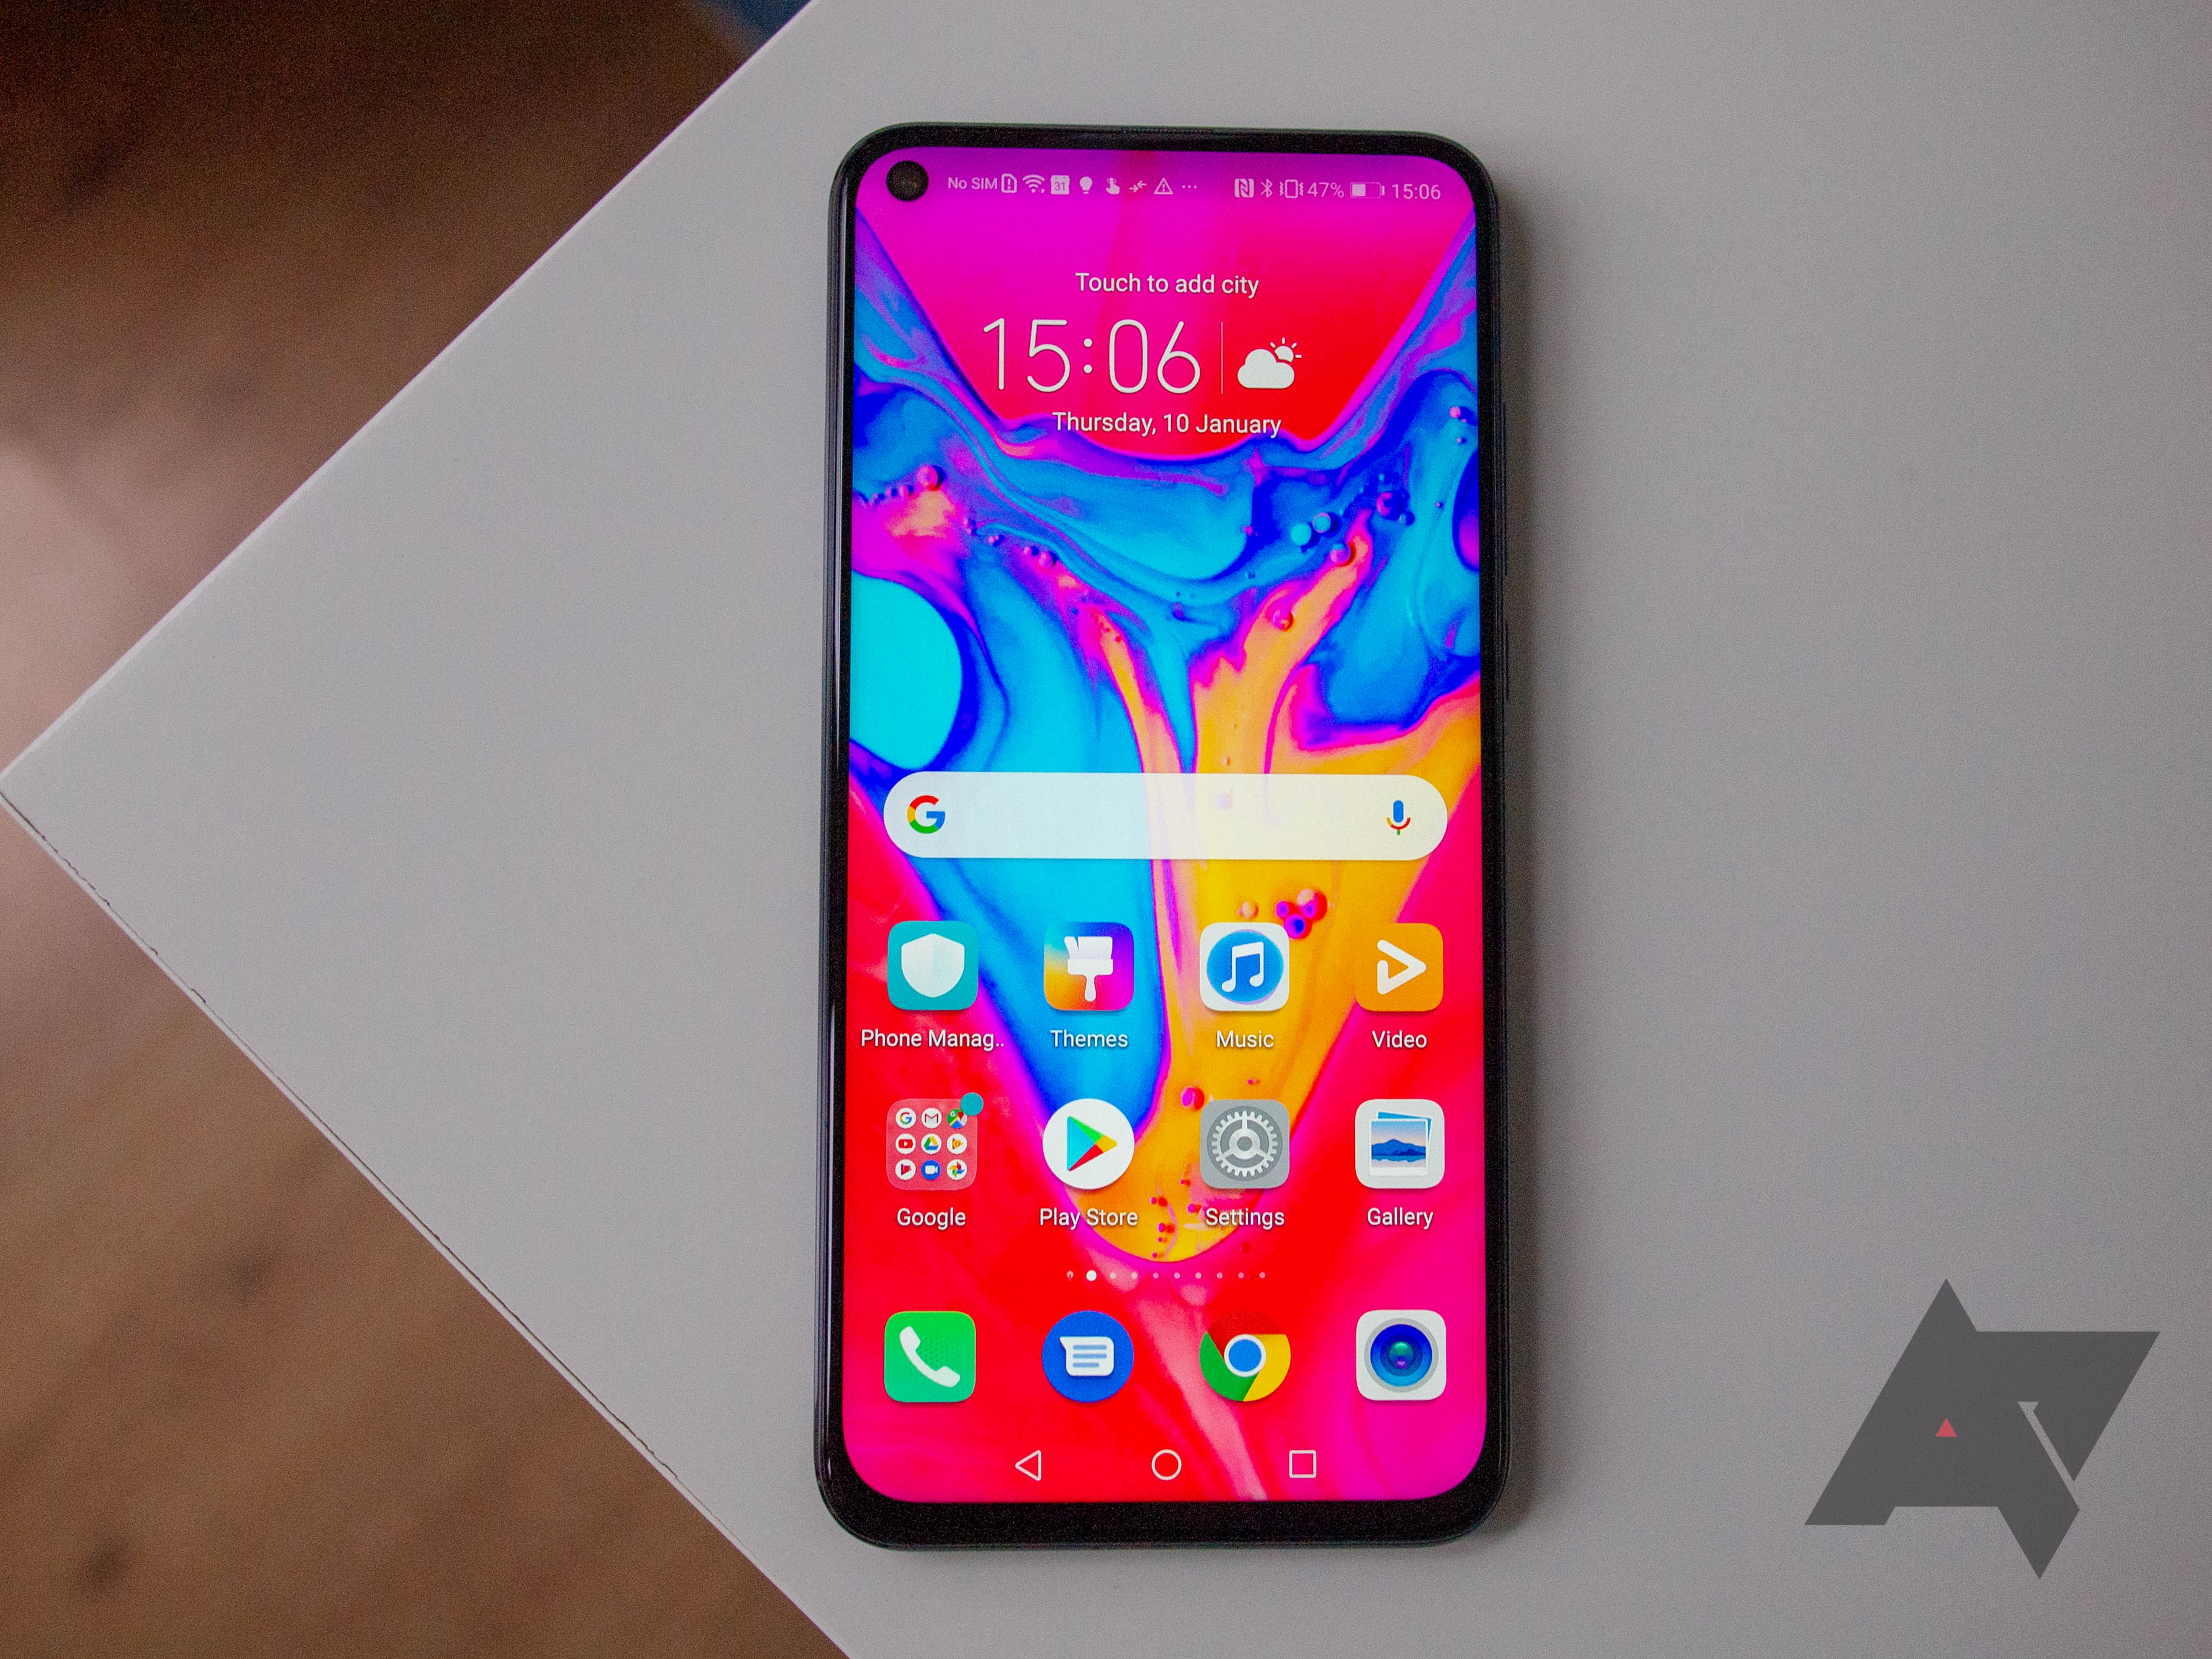 Honor View20: Ready to punch above its weight with an enticing blend